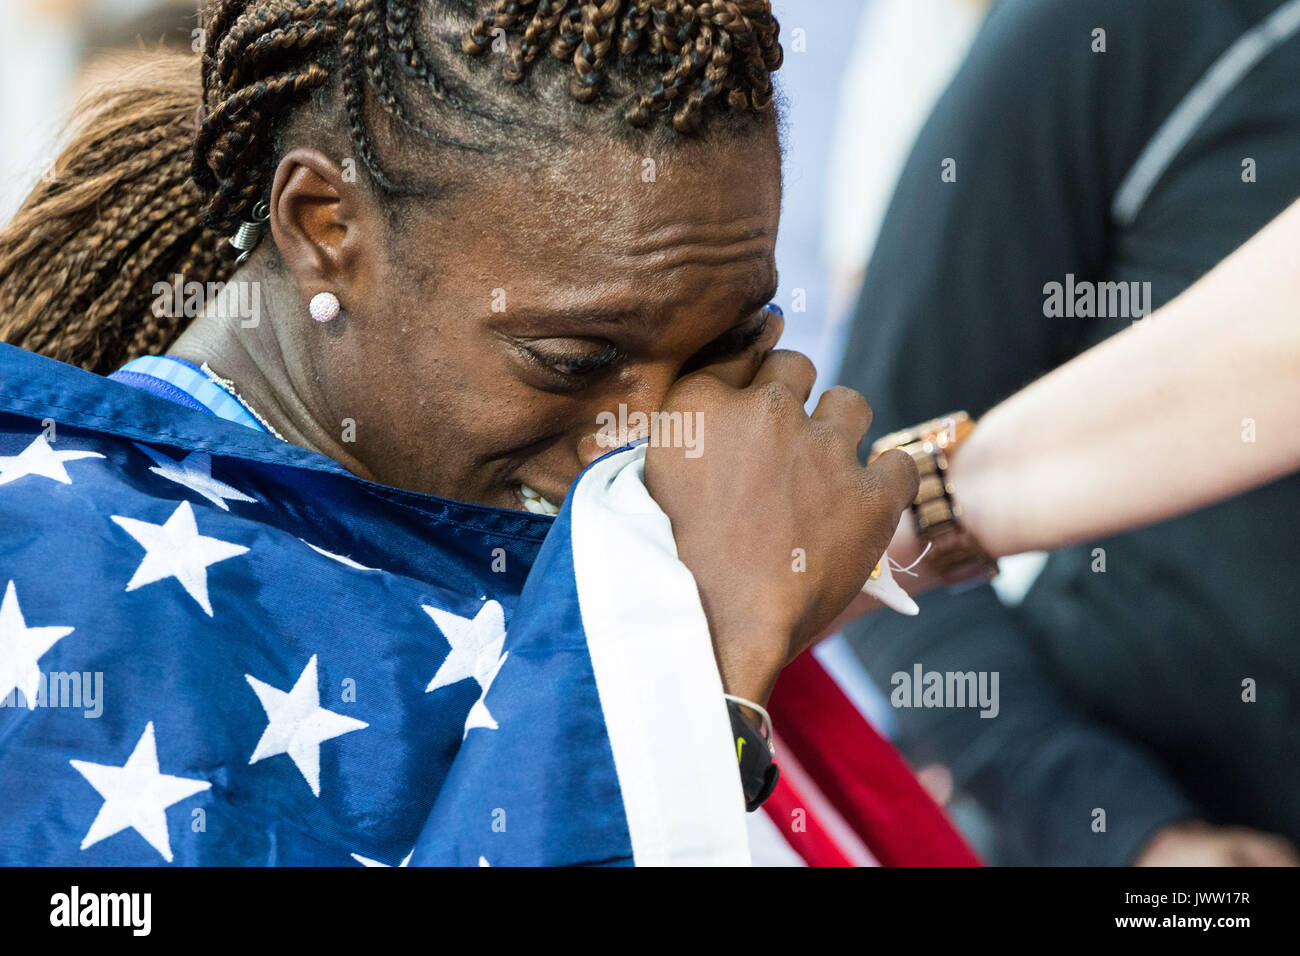 London, UK. 12th Aug, 2017.  an emotional Dawn Harper Nelson, USA, wipes here eyes after meeting her proud mother Linda at the side of the track following her silver medal in the women's 100m hurdles final on day nine of the IAAF London 2017 world Championships at the London Stadium. Credit: Paul Davey/Alamy Live News - Stock Image